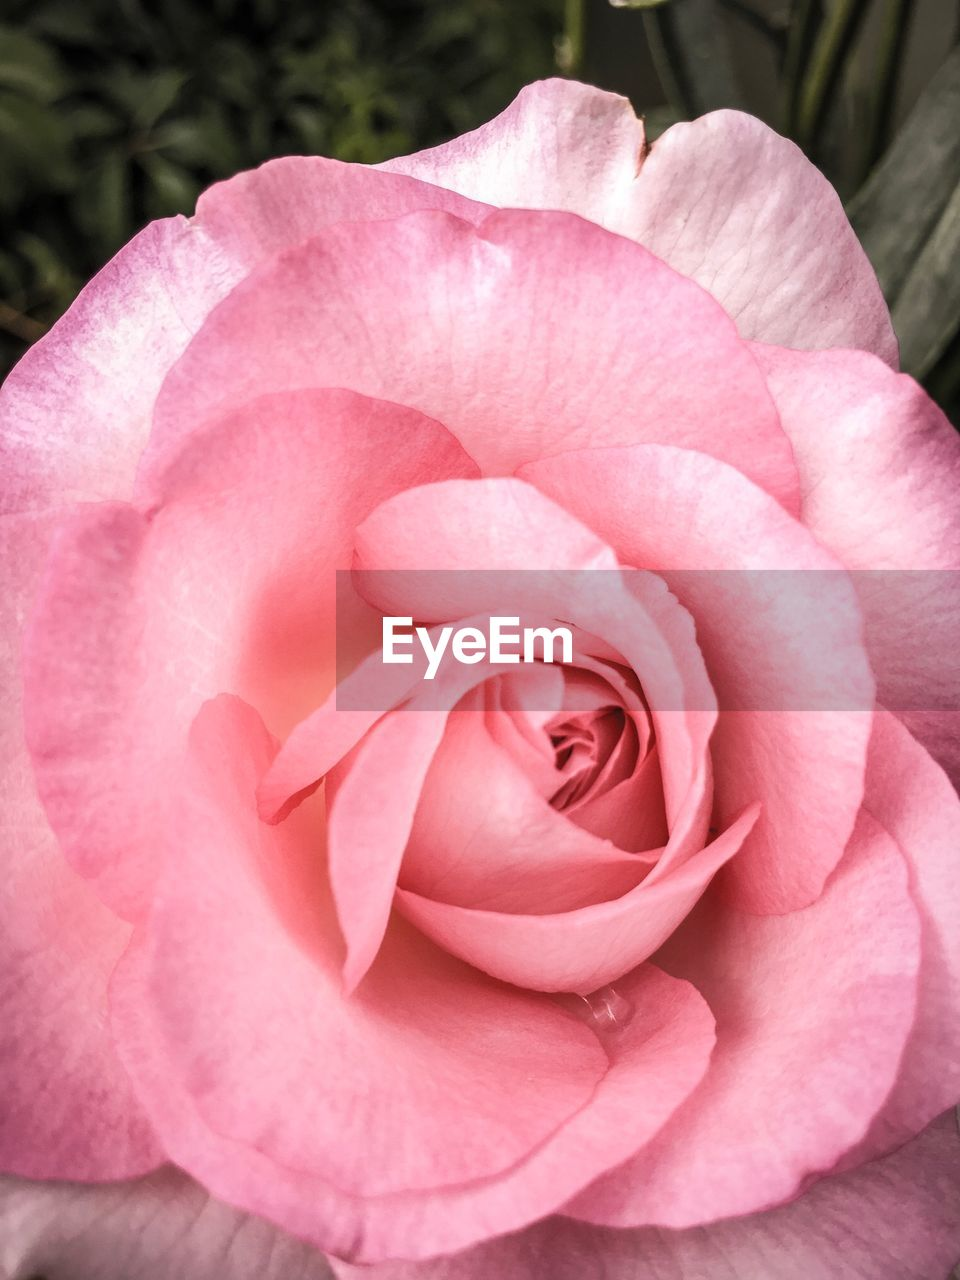 flower, flowering plant, plant, beauty in nature, pink color, vulnerability, petal, fragility, inflorescence, freshness, close-up, rose, flower head, growth, nature, rose - flower, no people, day, outdoors, softness